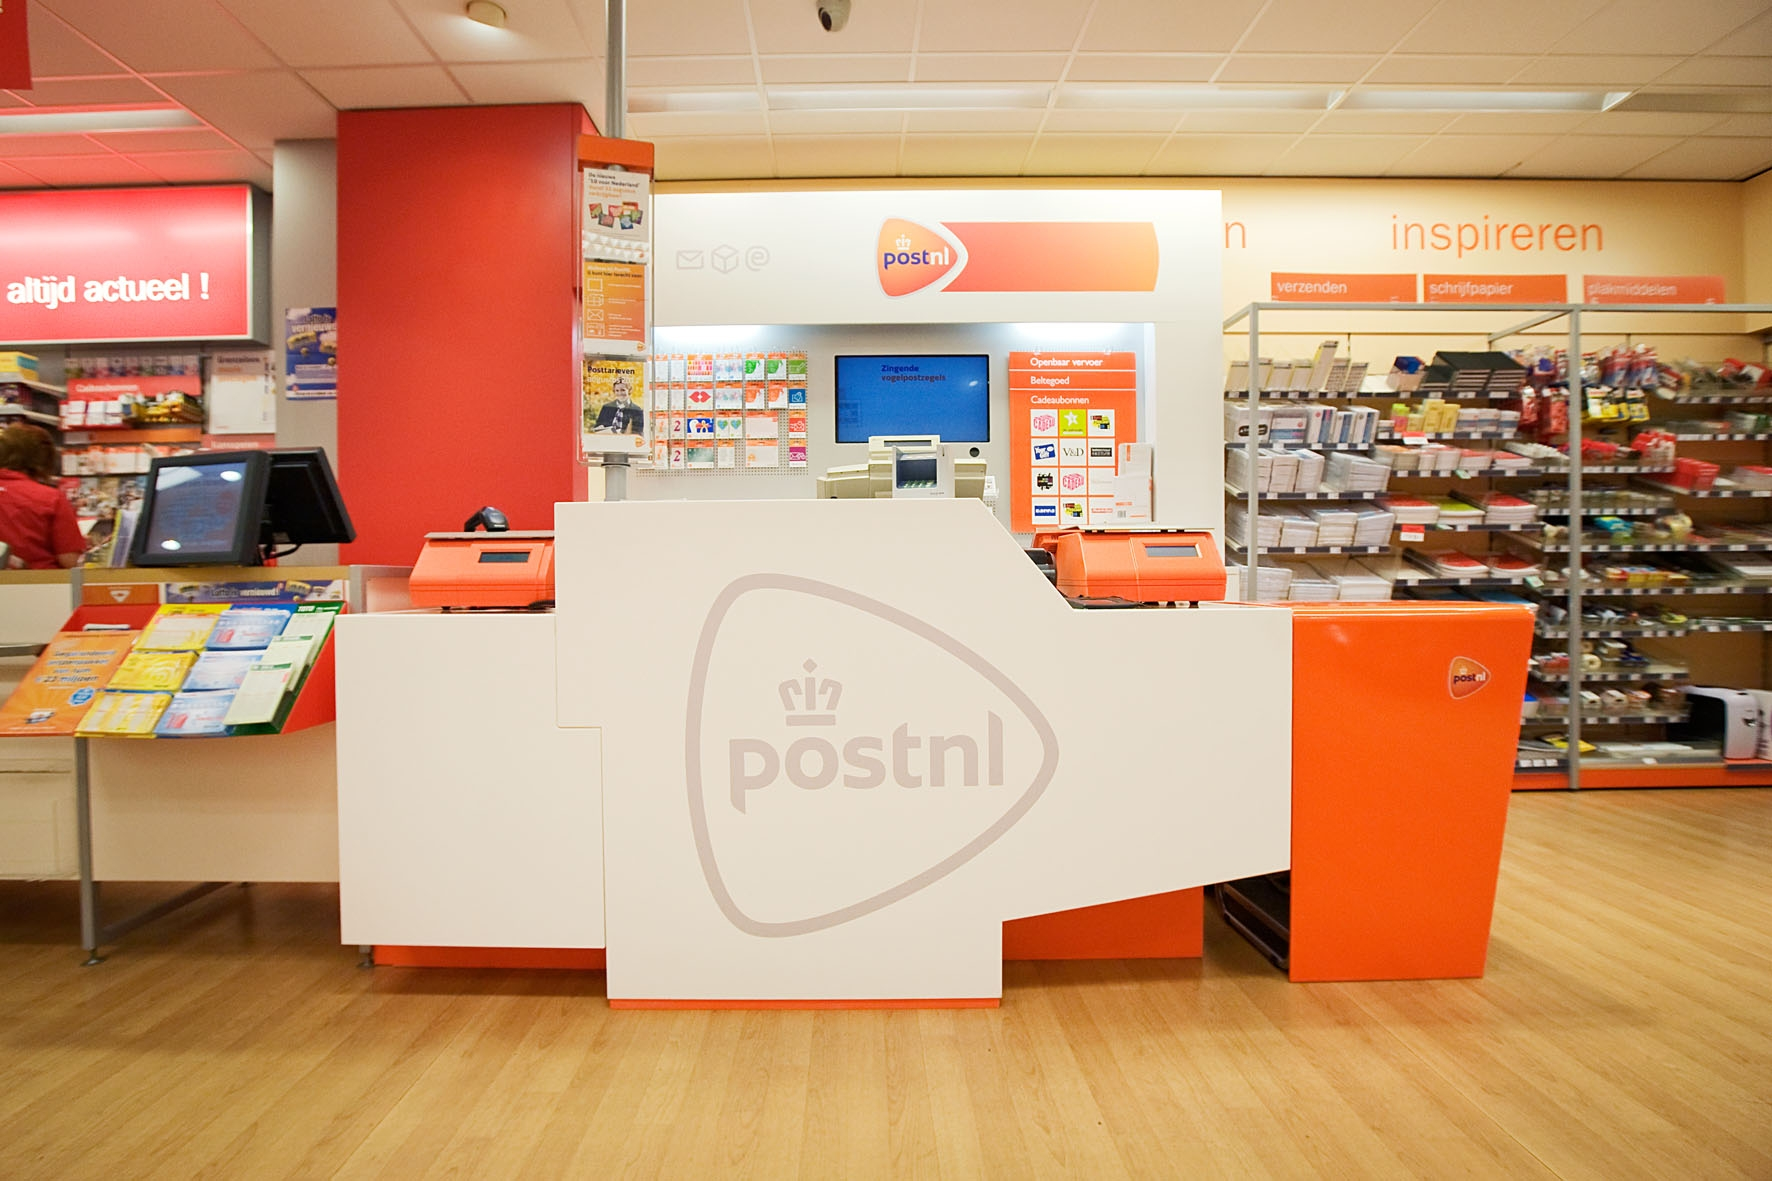 PostNL background